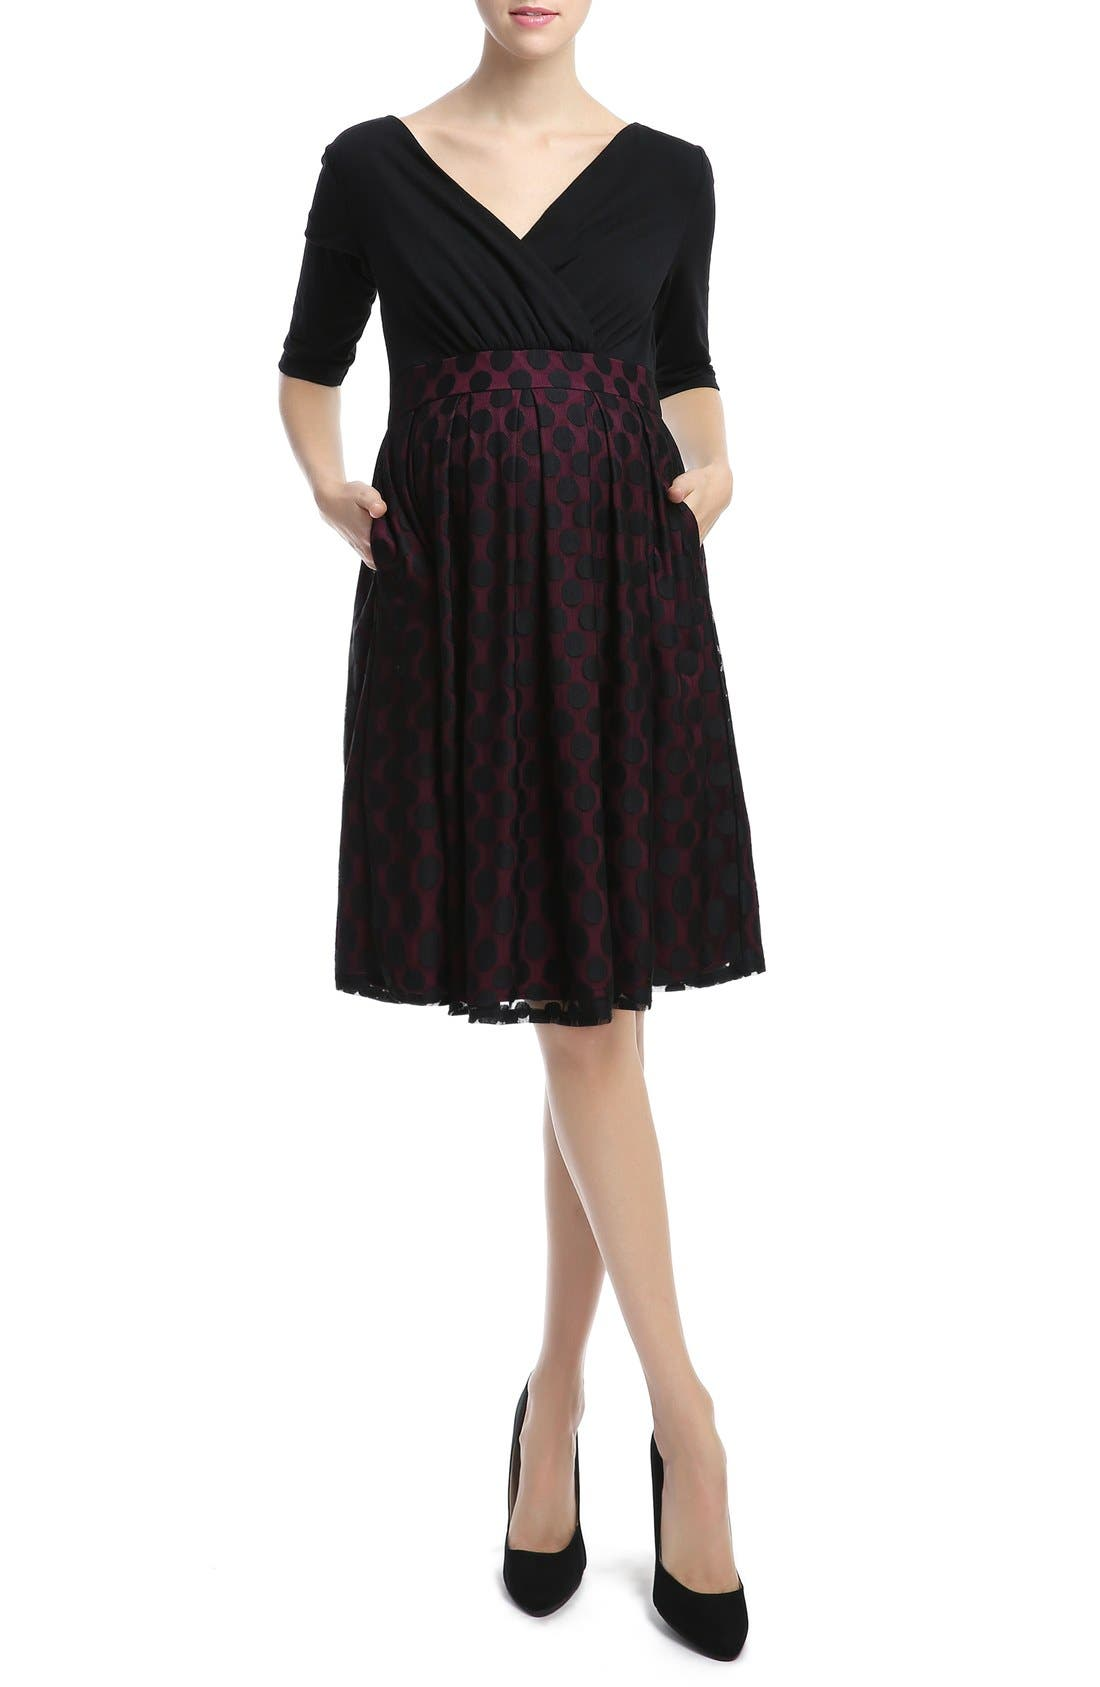 KIMI AND KAI 'Liliana' Polka Dot Lace Maternity Dress, Main, color, 003